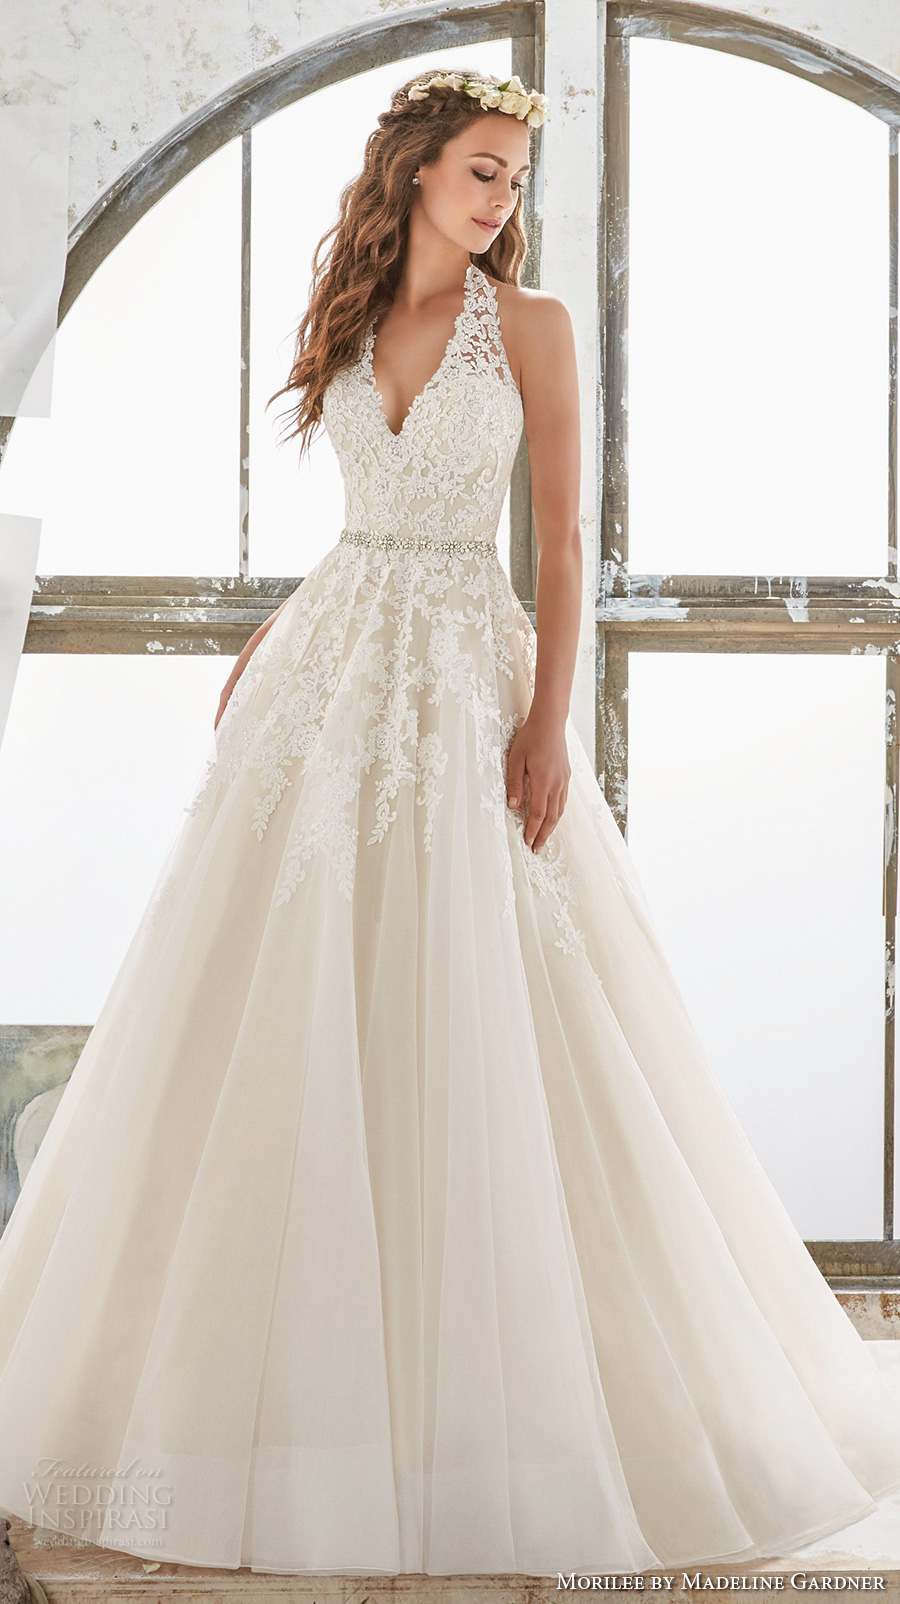 Trubridal wedding blog morilee by madeline gardner for Dresses for spring wedding